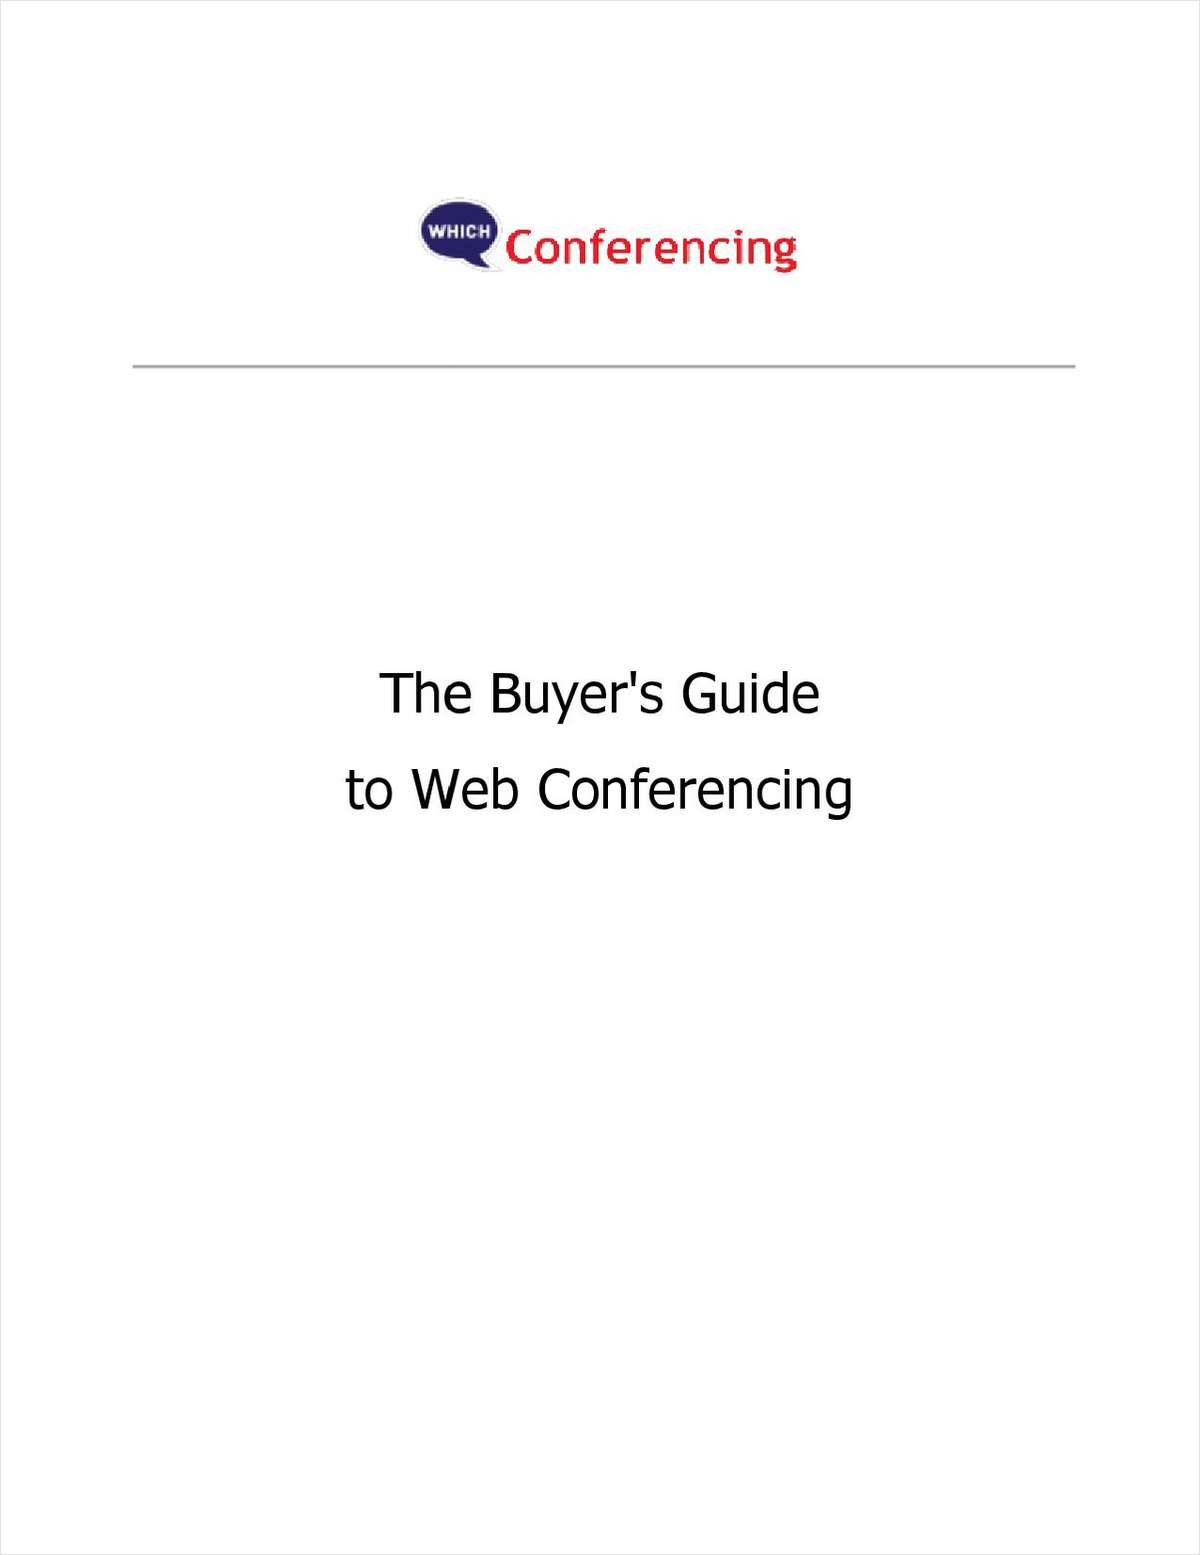 Top 8 Reasons to Integrate a Web/Audio Conferencing System Into Your Business